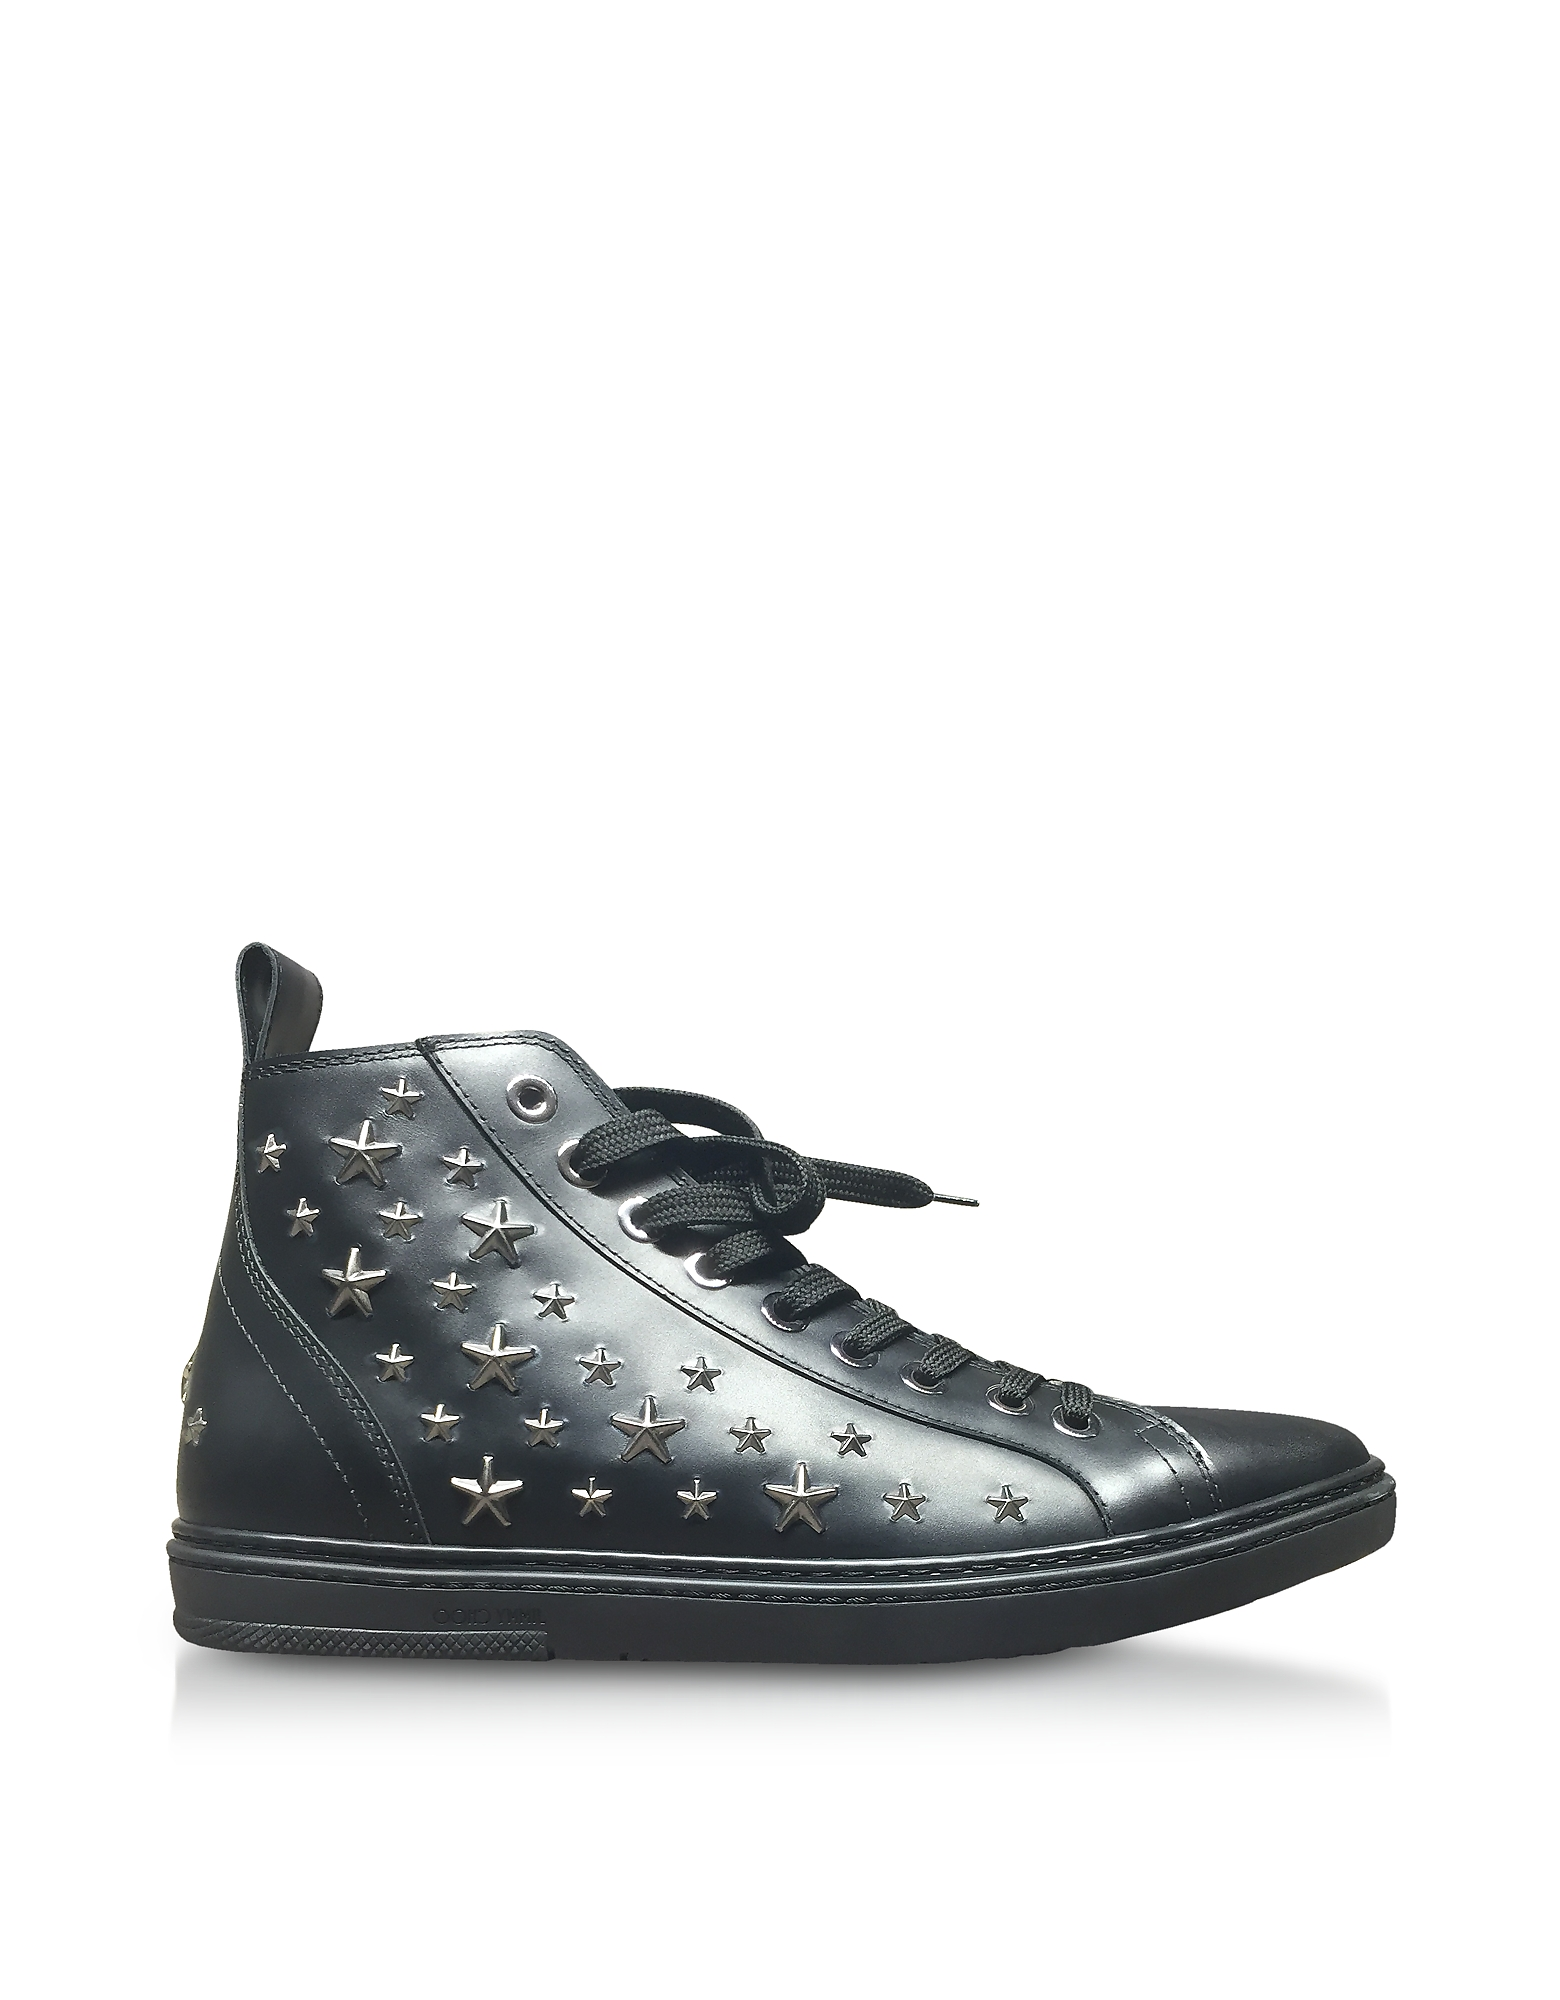 Jimmy Choo Shoes, Colt Black Leather Sport High Top Sneakers w/Multi Stars